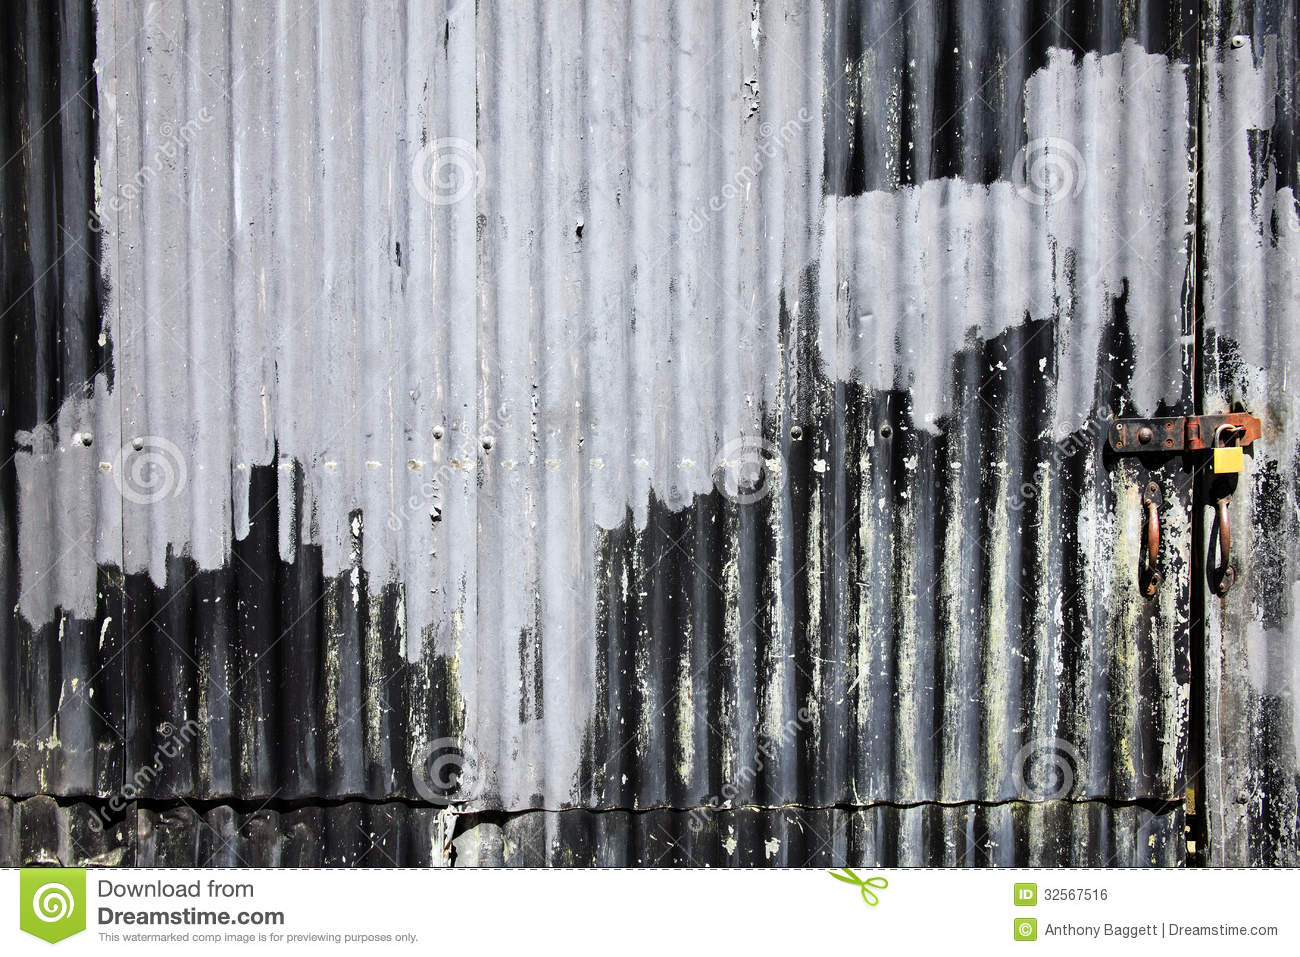 Corrugated Iron Fence Background Royalty Free Stock Image